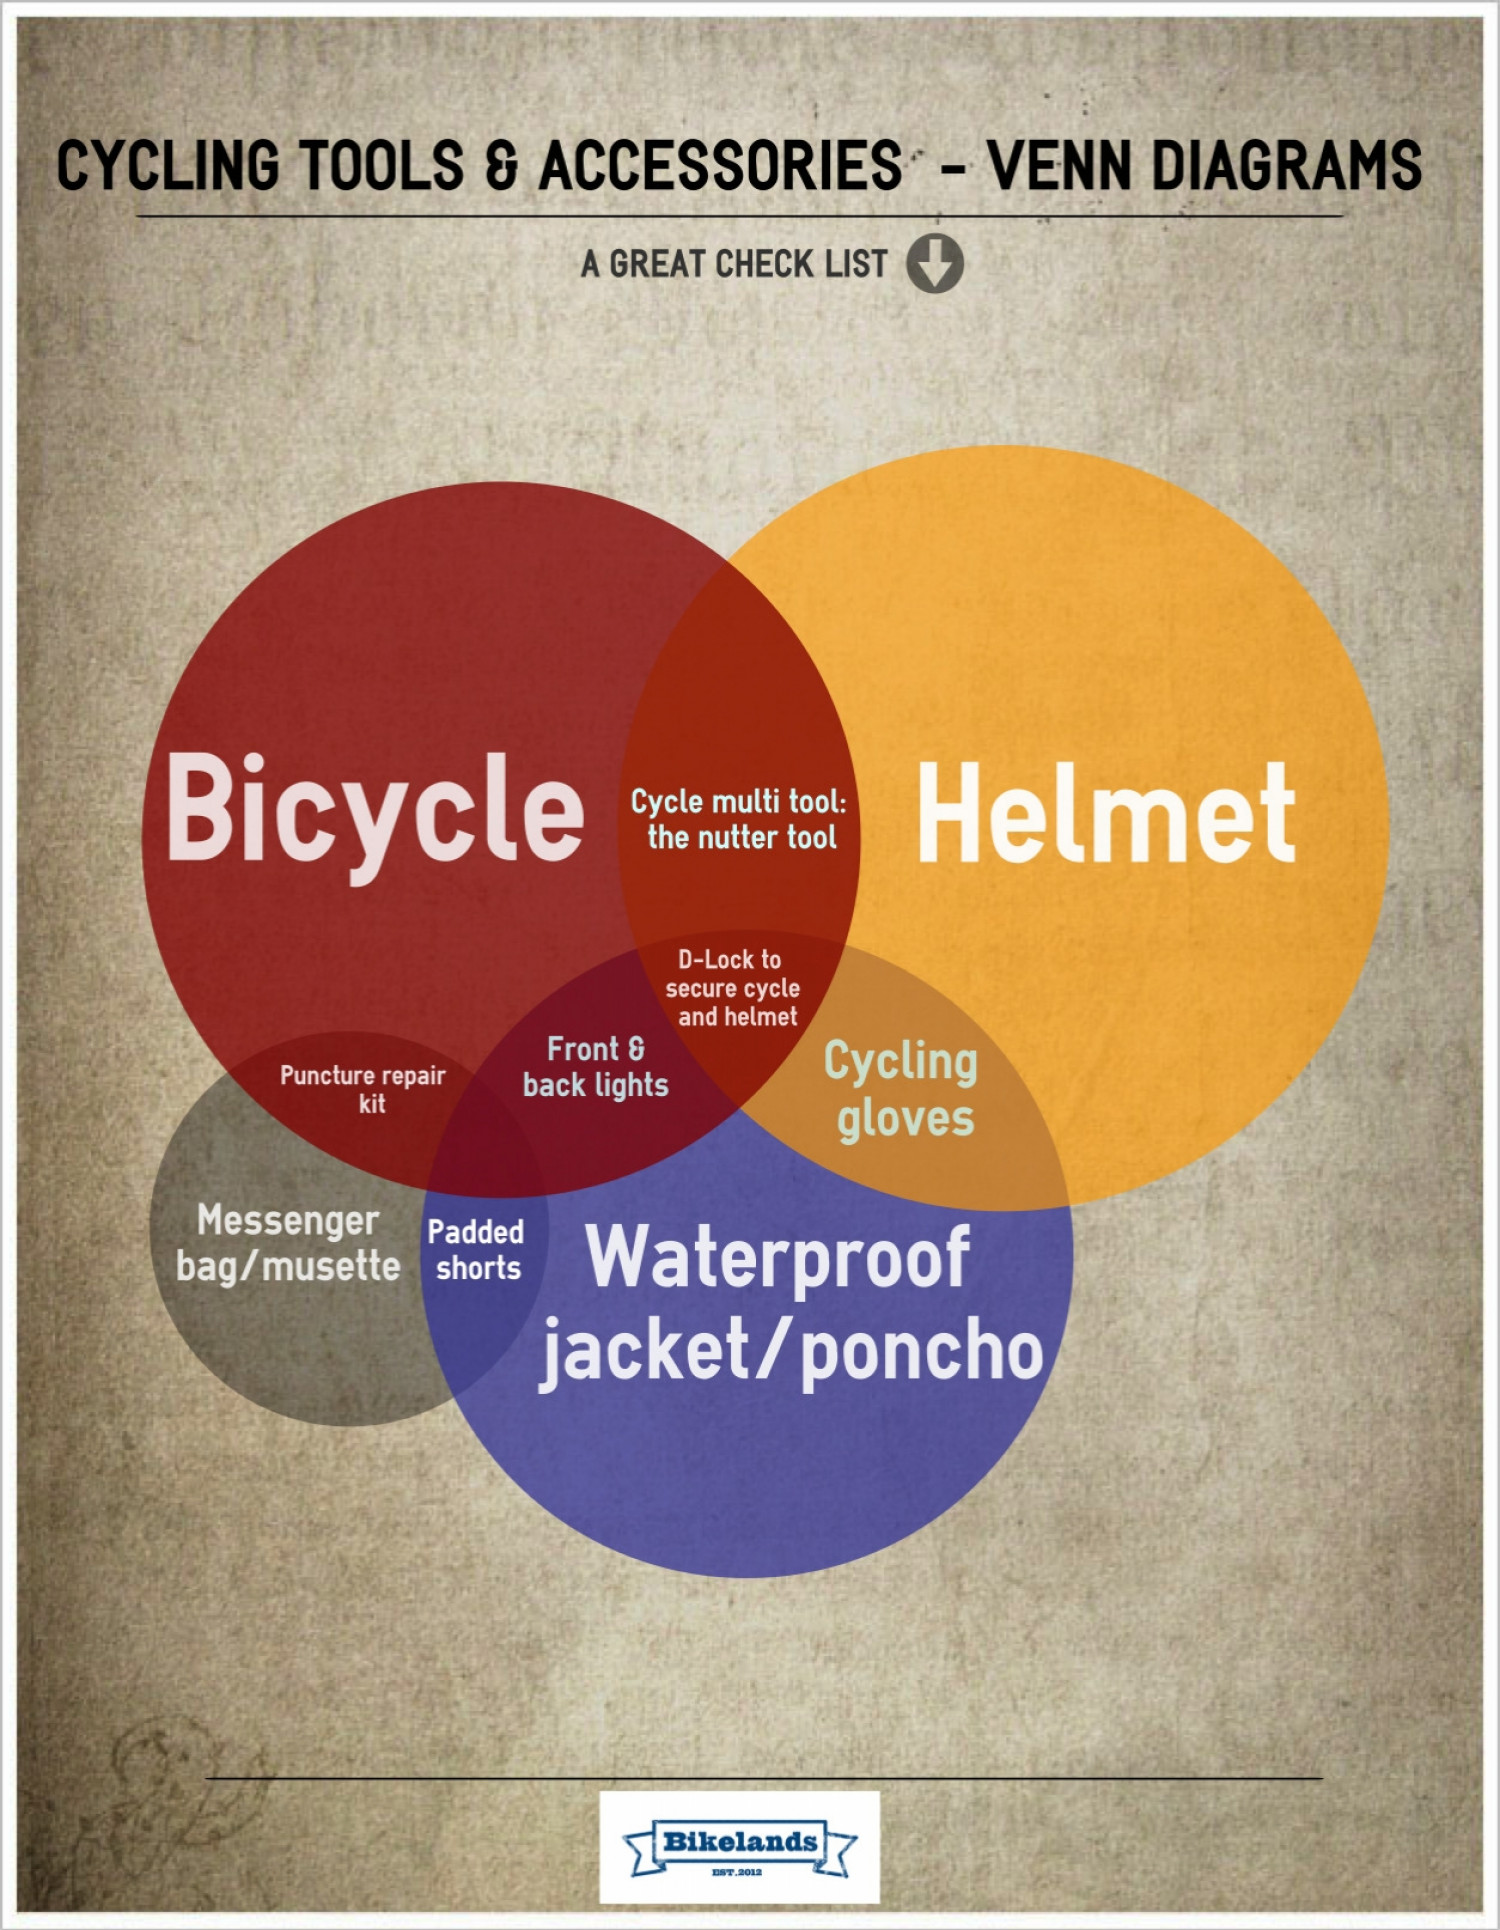 Cycling Accessories and Tools Infographic